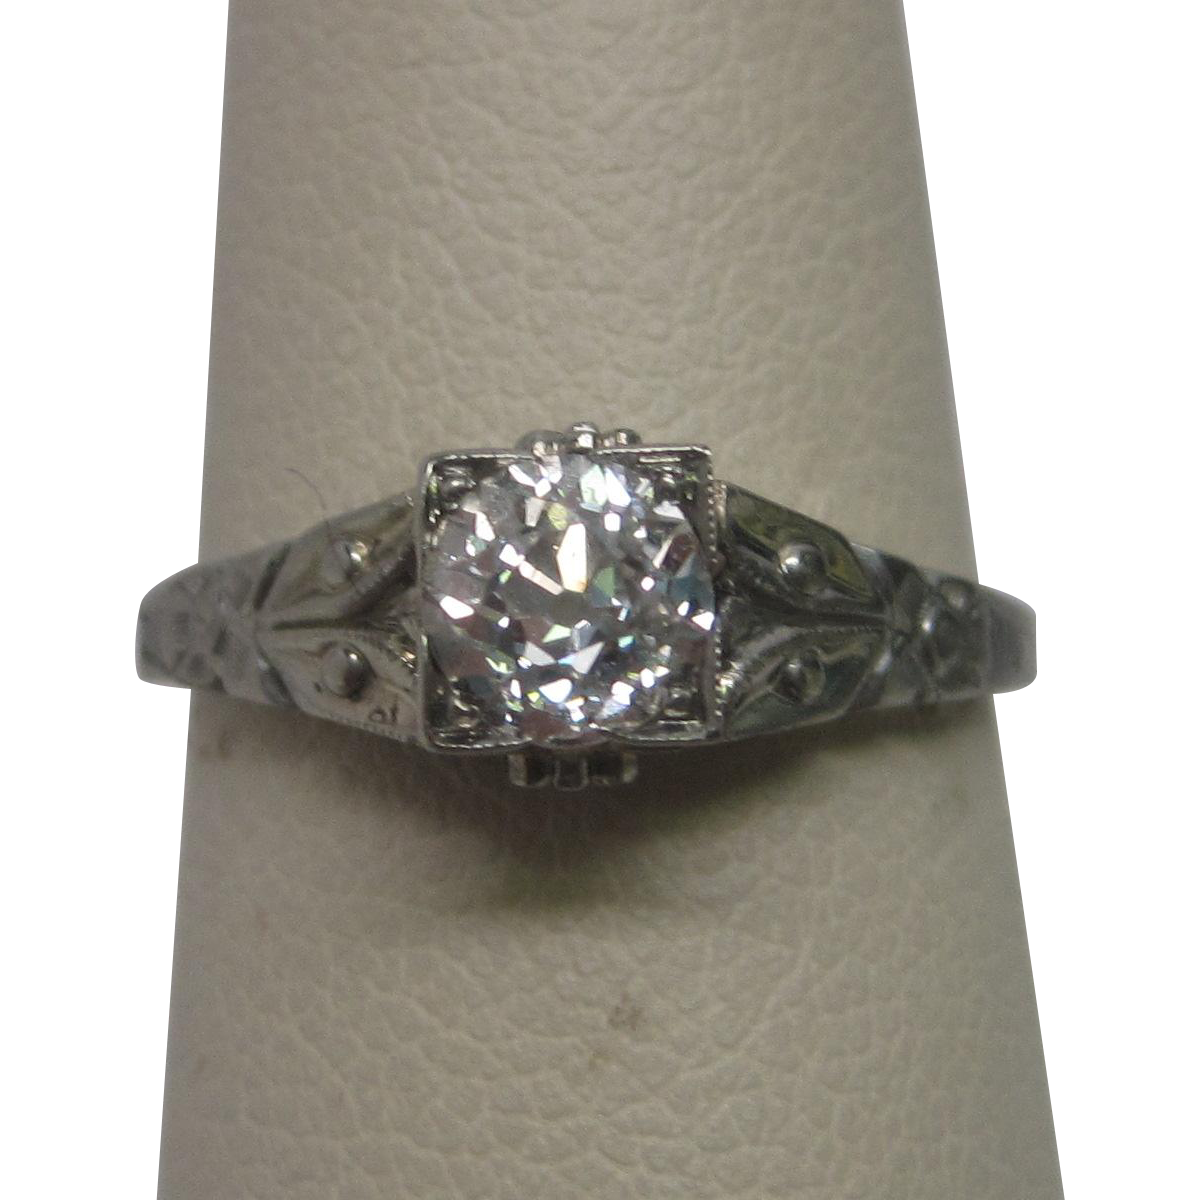 Art Deco 0.75 ct. Diamond Engagement Ring in 18K White Gold ca 1930